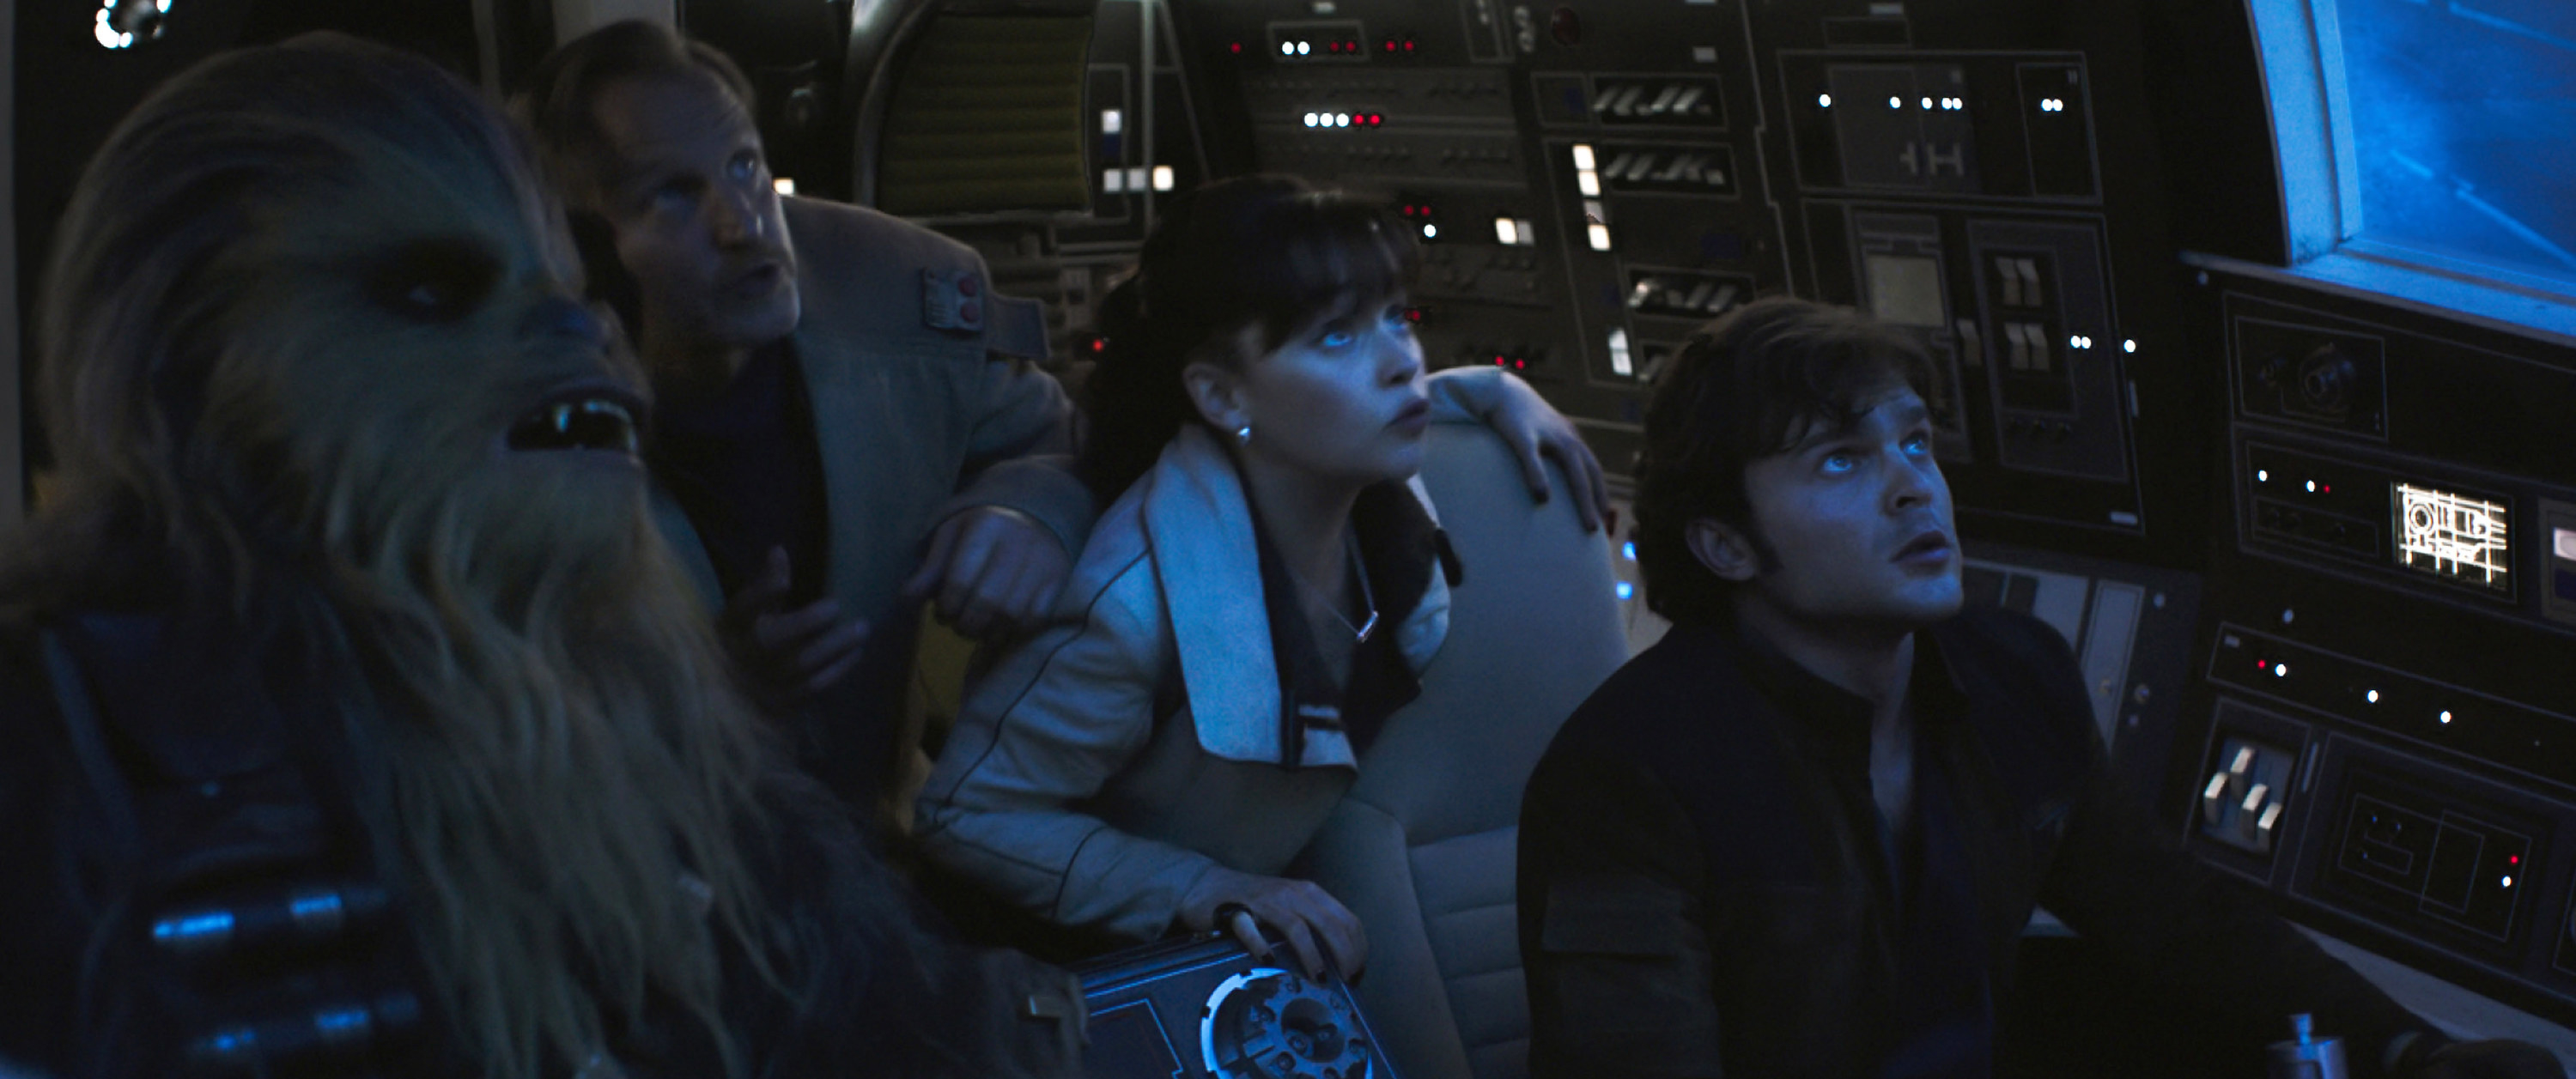 """Left to right, Joonas Suotamo as Chewbacca, Woody Harrelson as Beckett, Emilia Clarke as Qi'ra, Alden Ehrenreich as Han Solo stare off-screen in """"Solo: A Star Wars Story"""""""